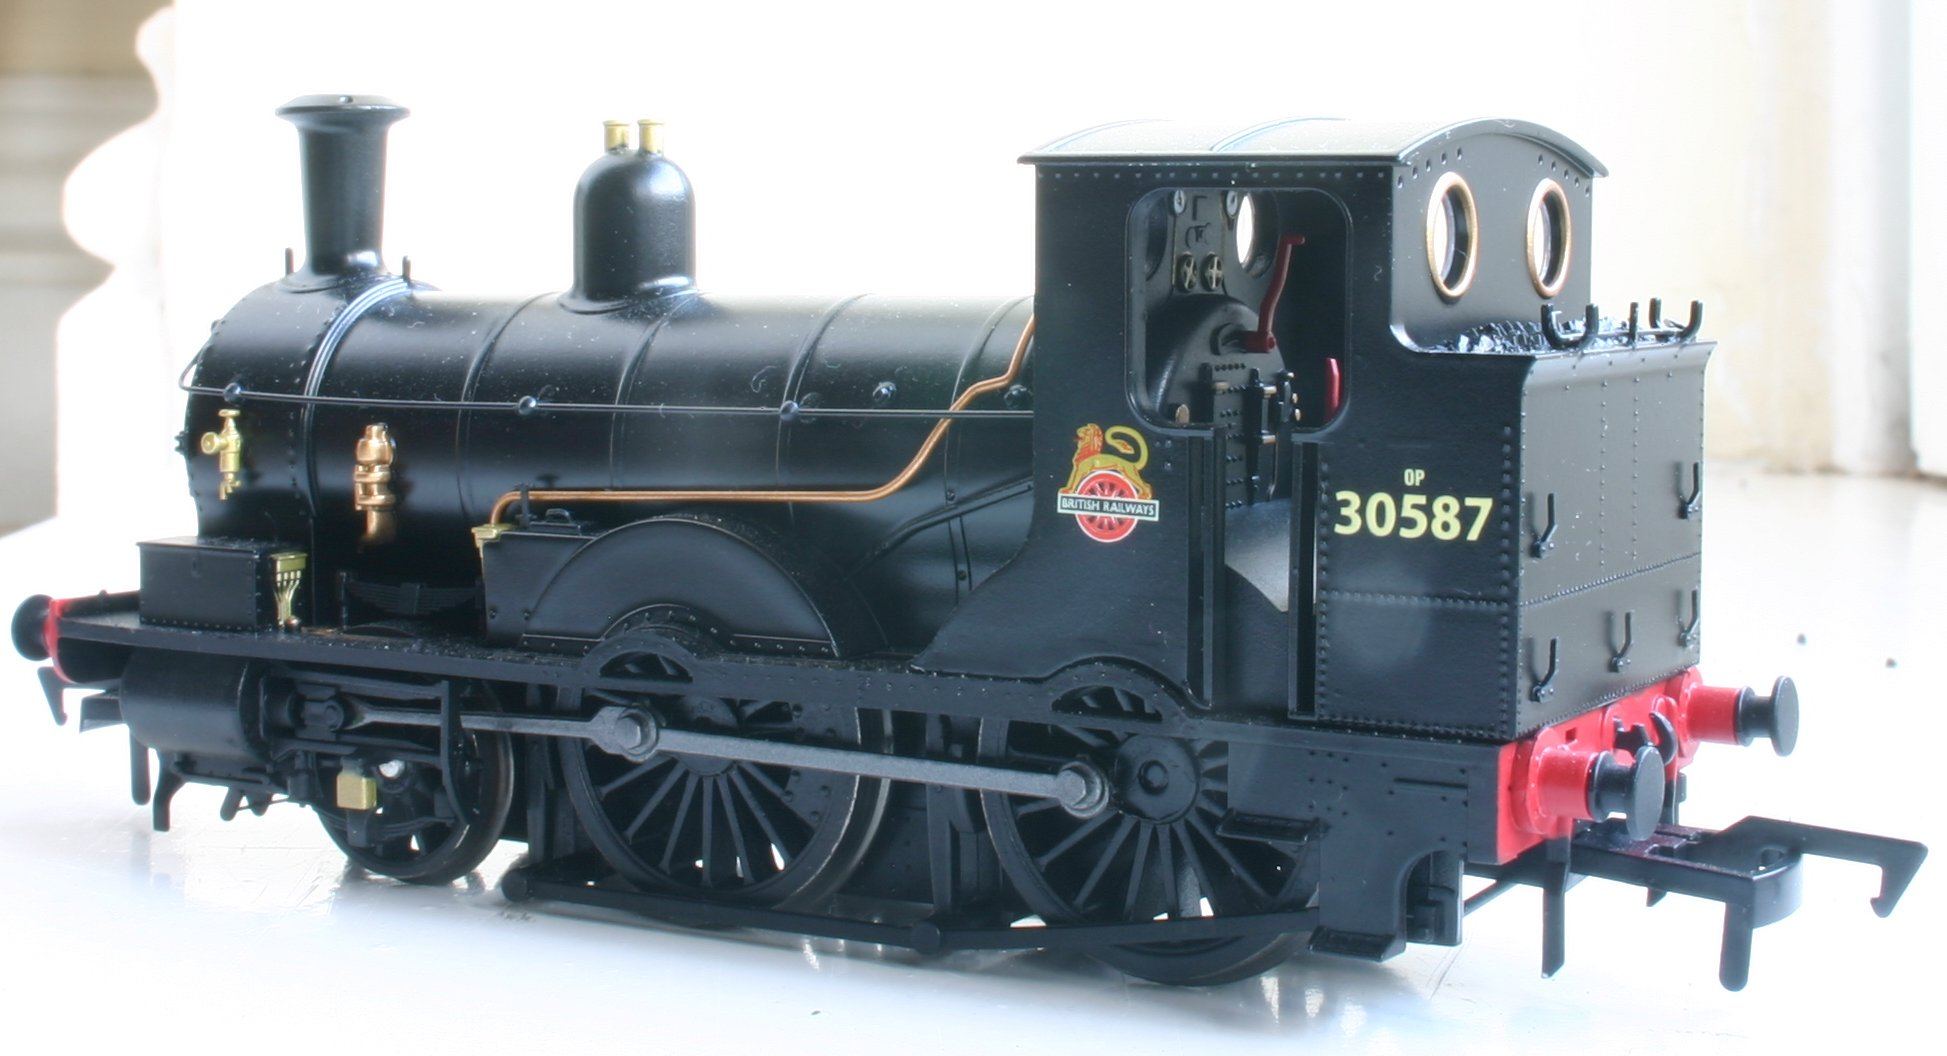 how to clean and lubricate a model train engine